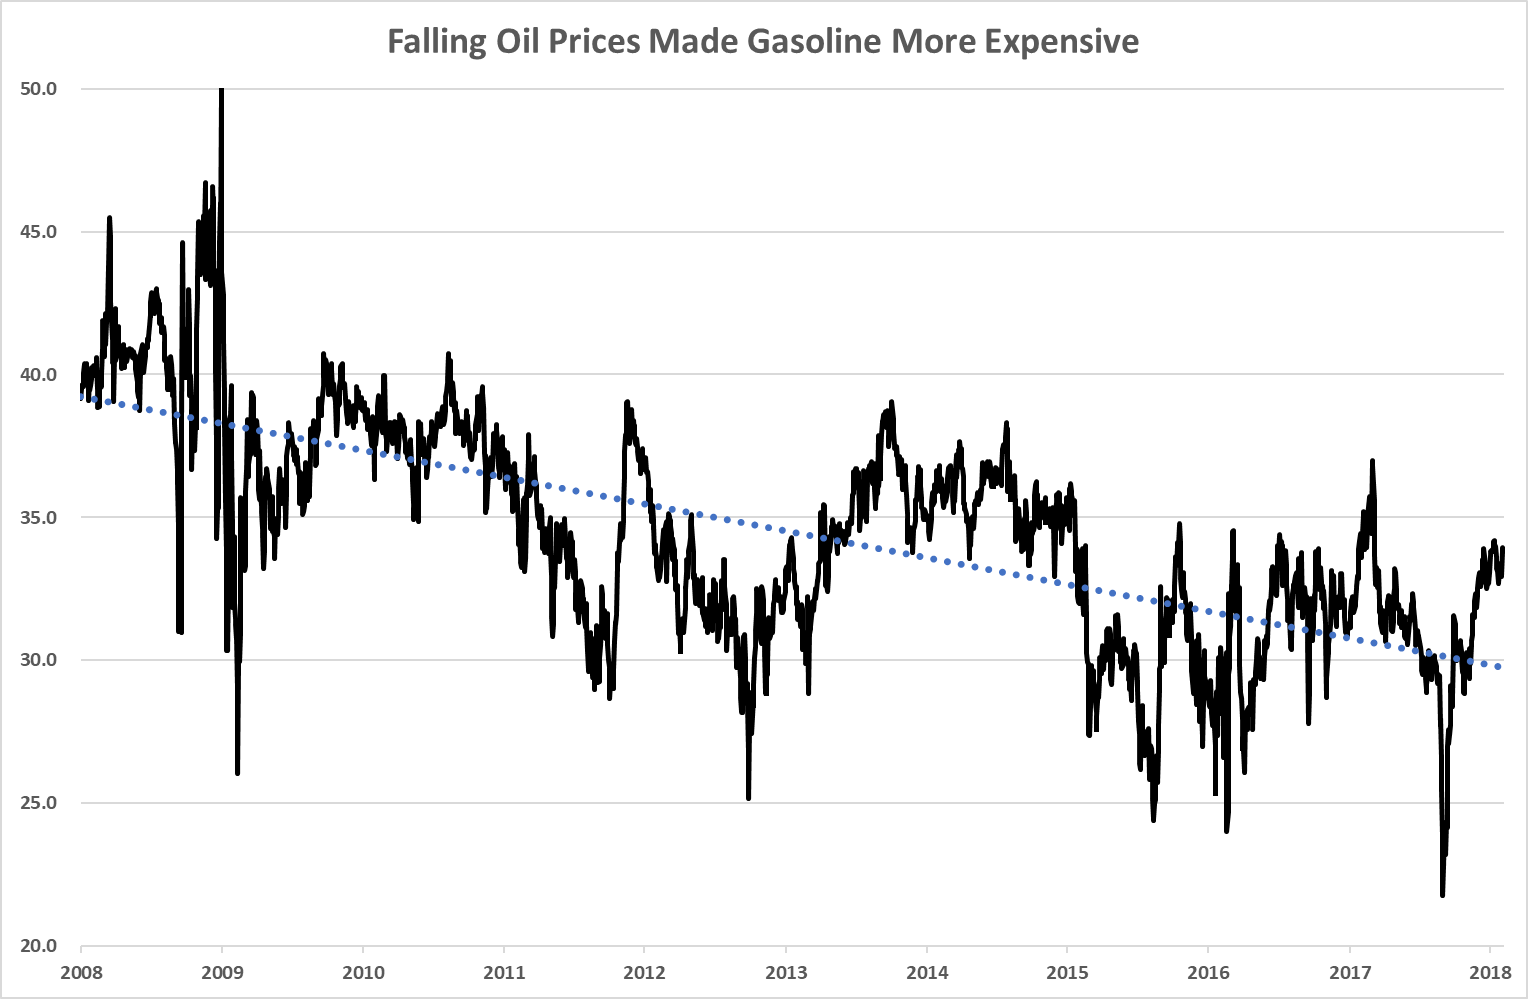 We've had nearly four years of low gasoline prices. However, we're paying more for gasoline now, on a relative basis, than we did back in 2008.